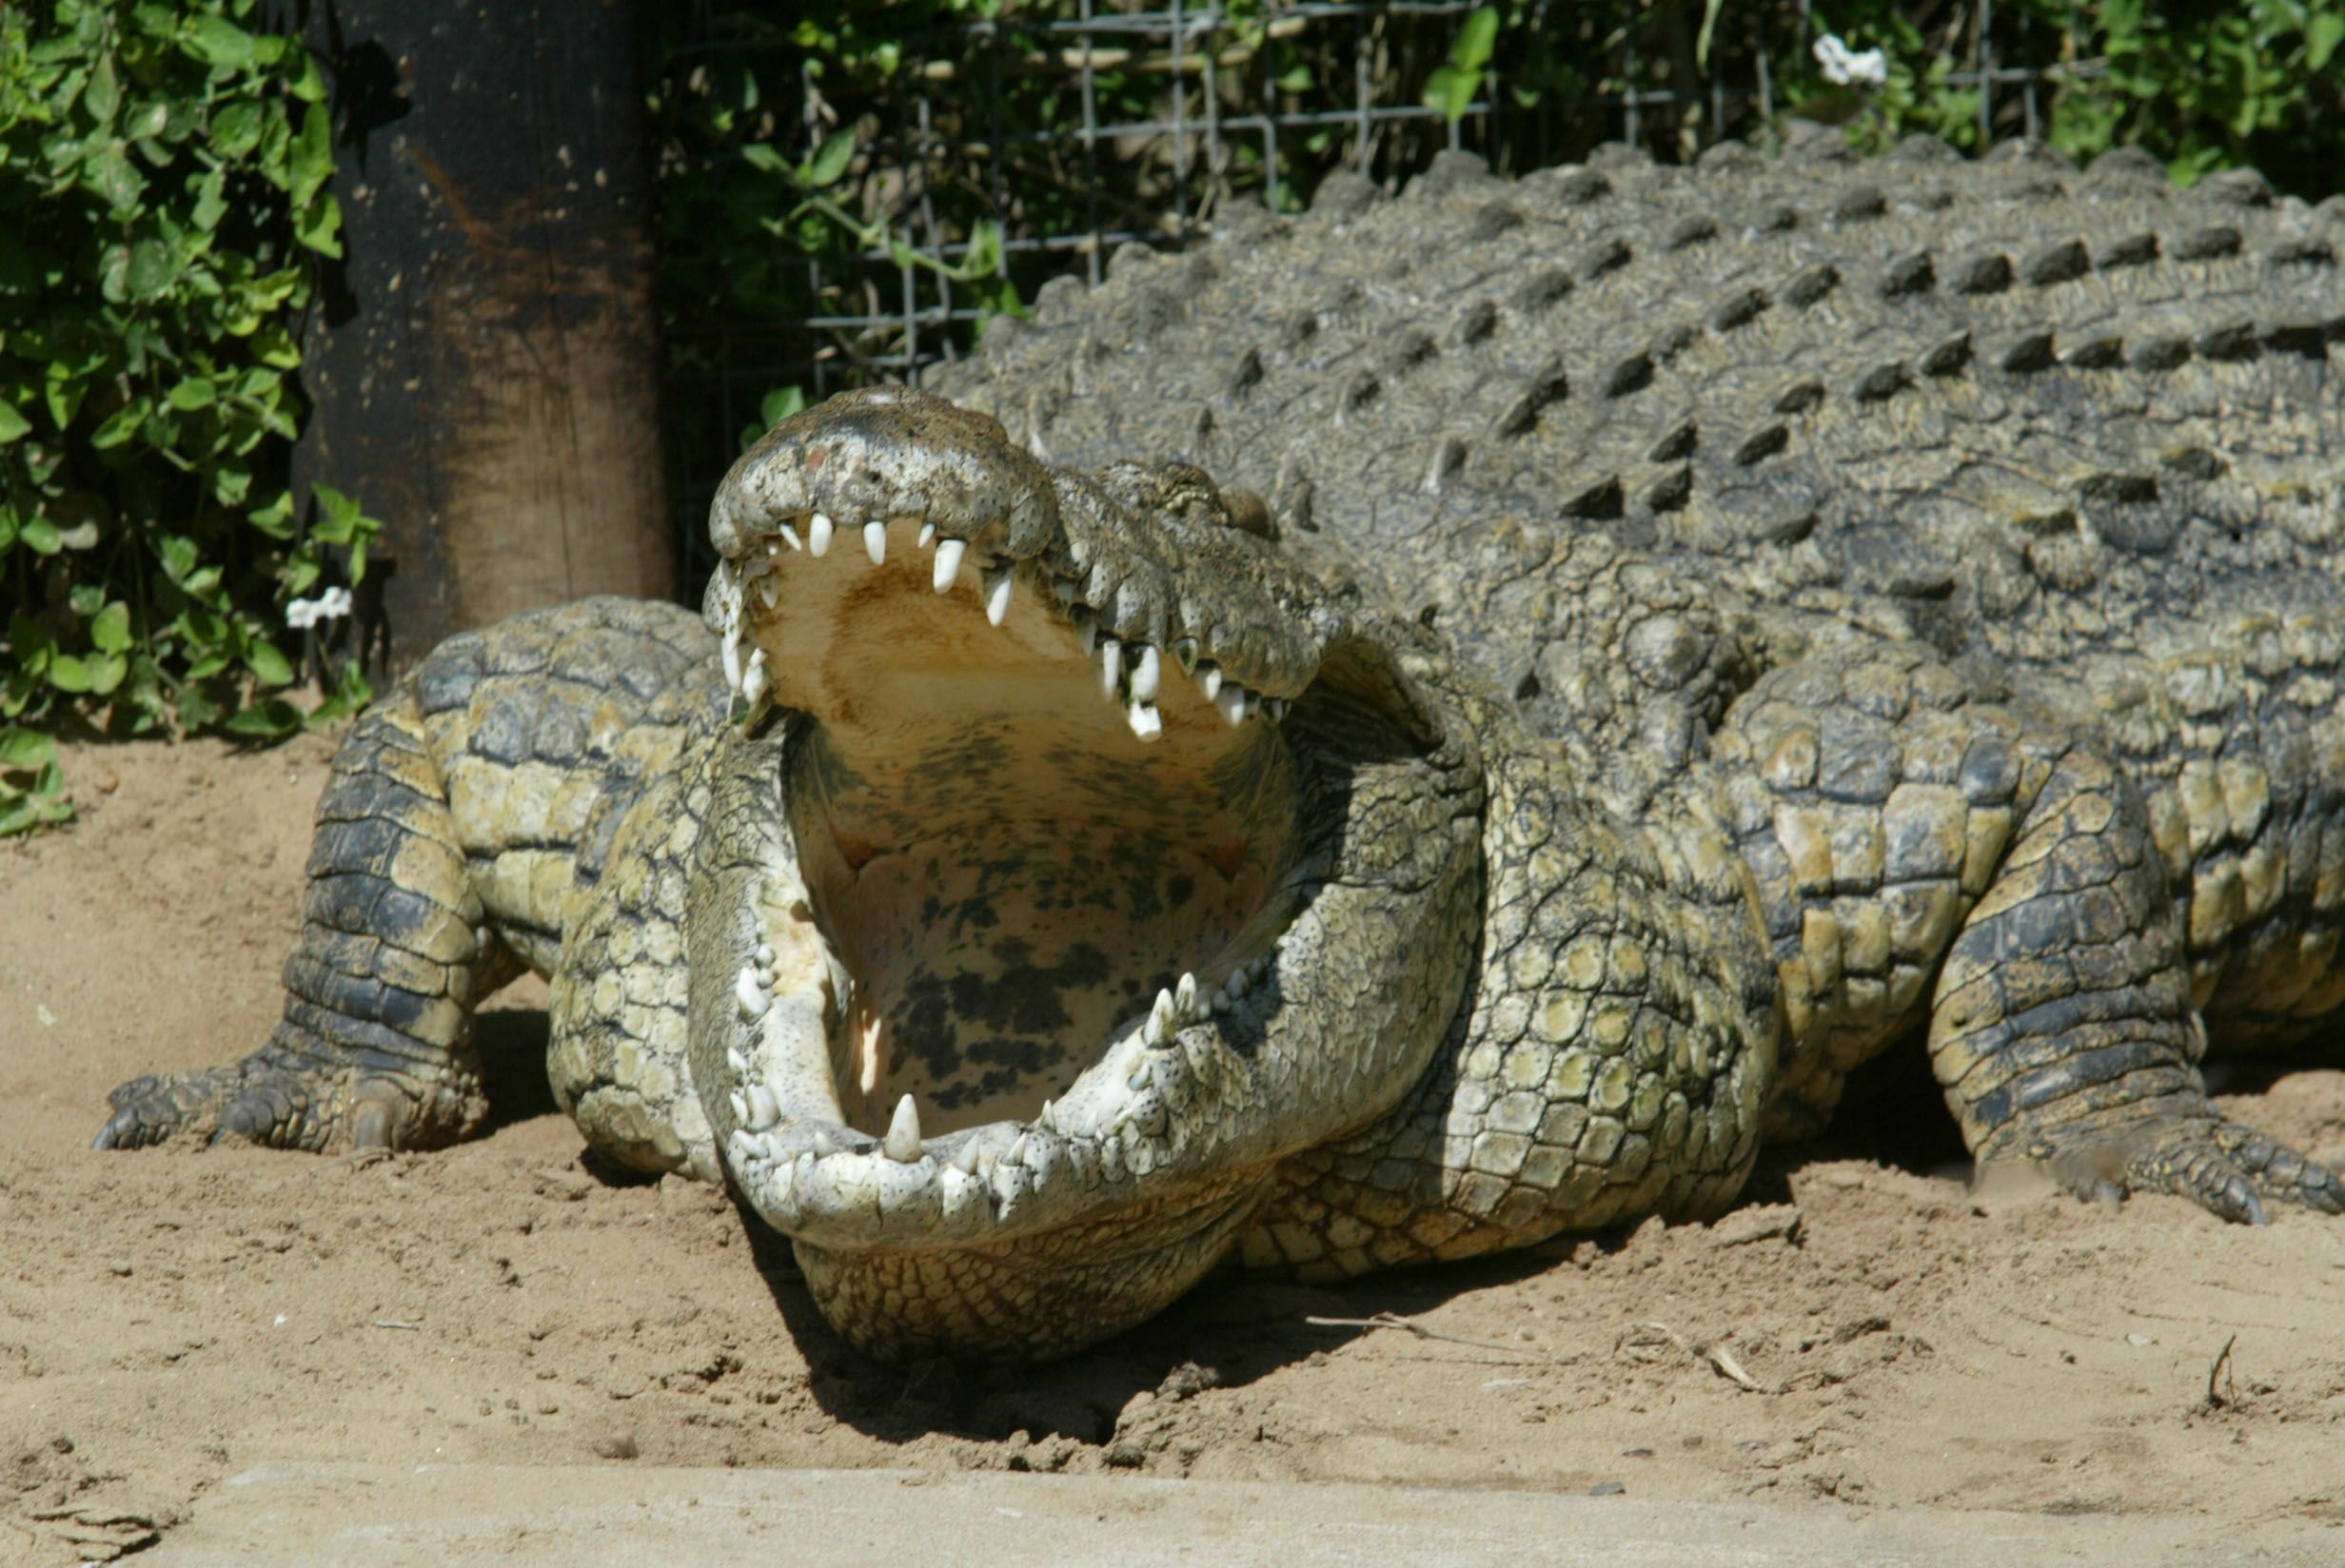 Nile Crocodiles Are in Florida, but No Need to Panic